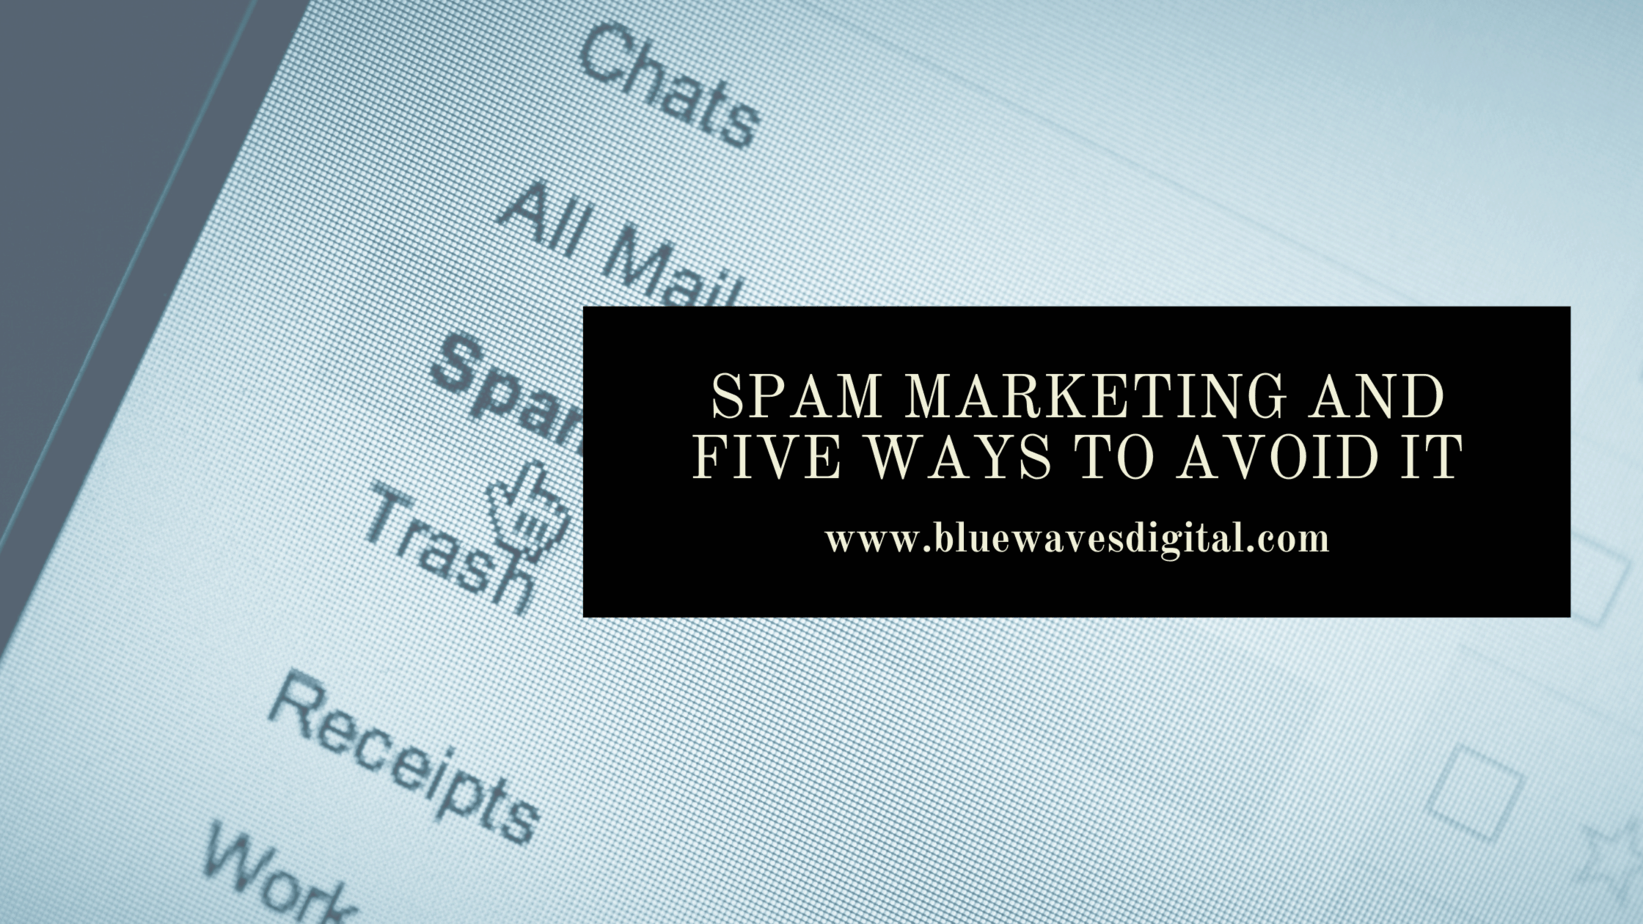 Spam Marketing And Five Ways to Avoid It